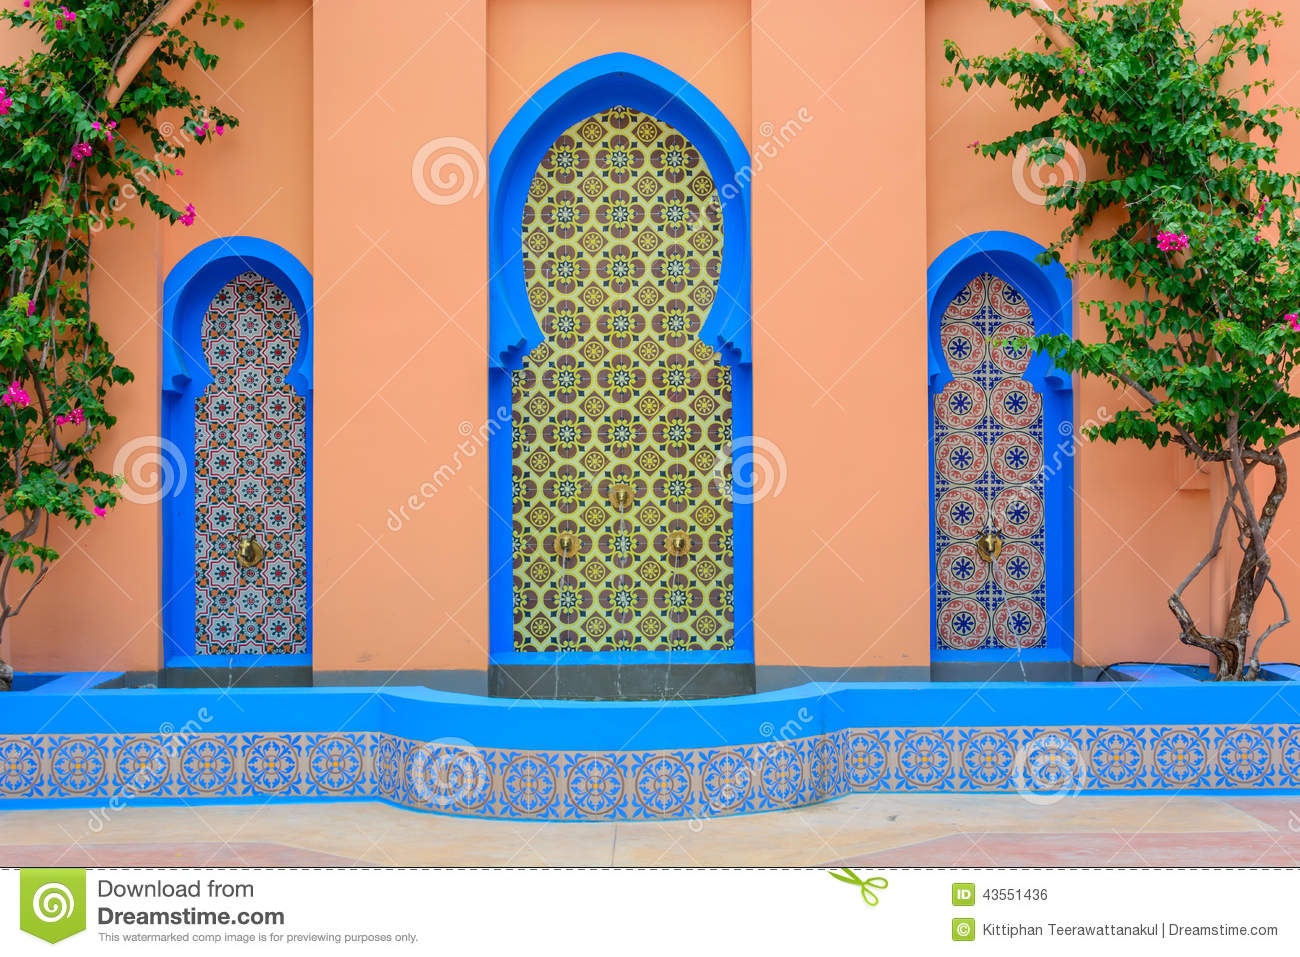 moroccan style fountain stock photo - image: 43551436